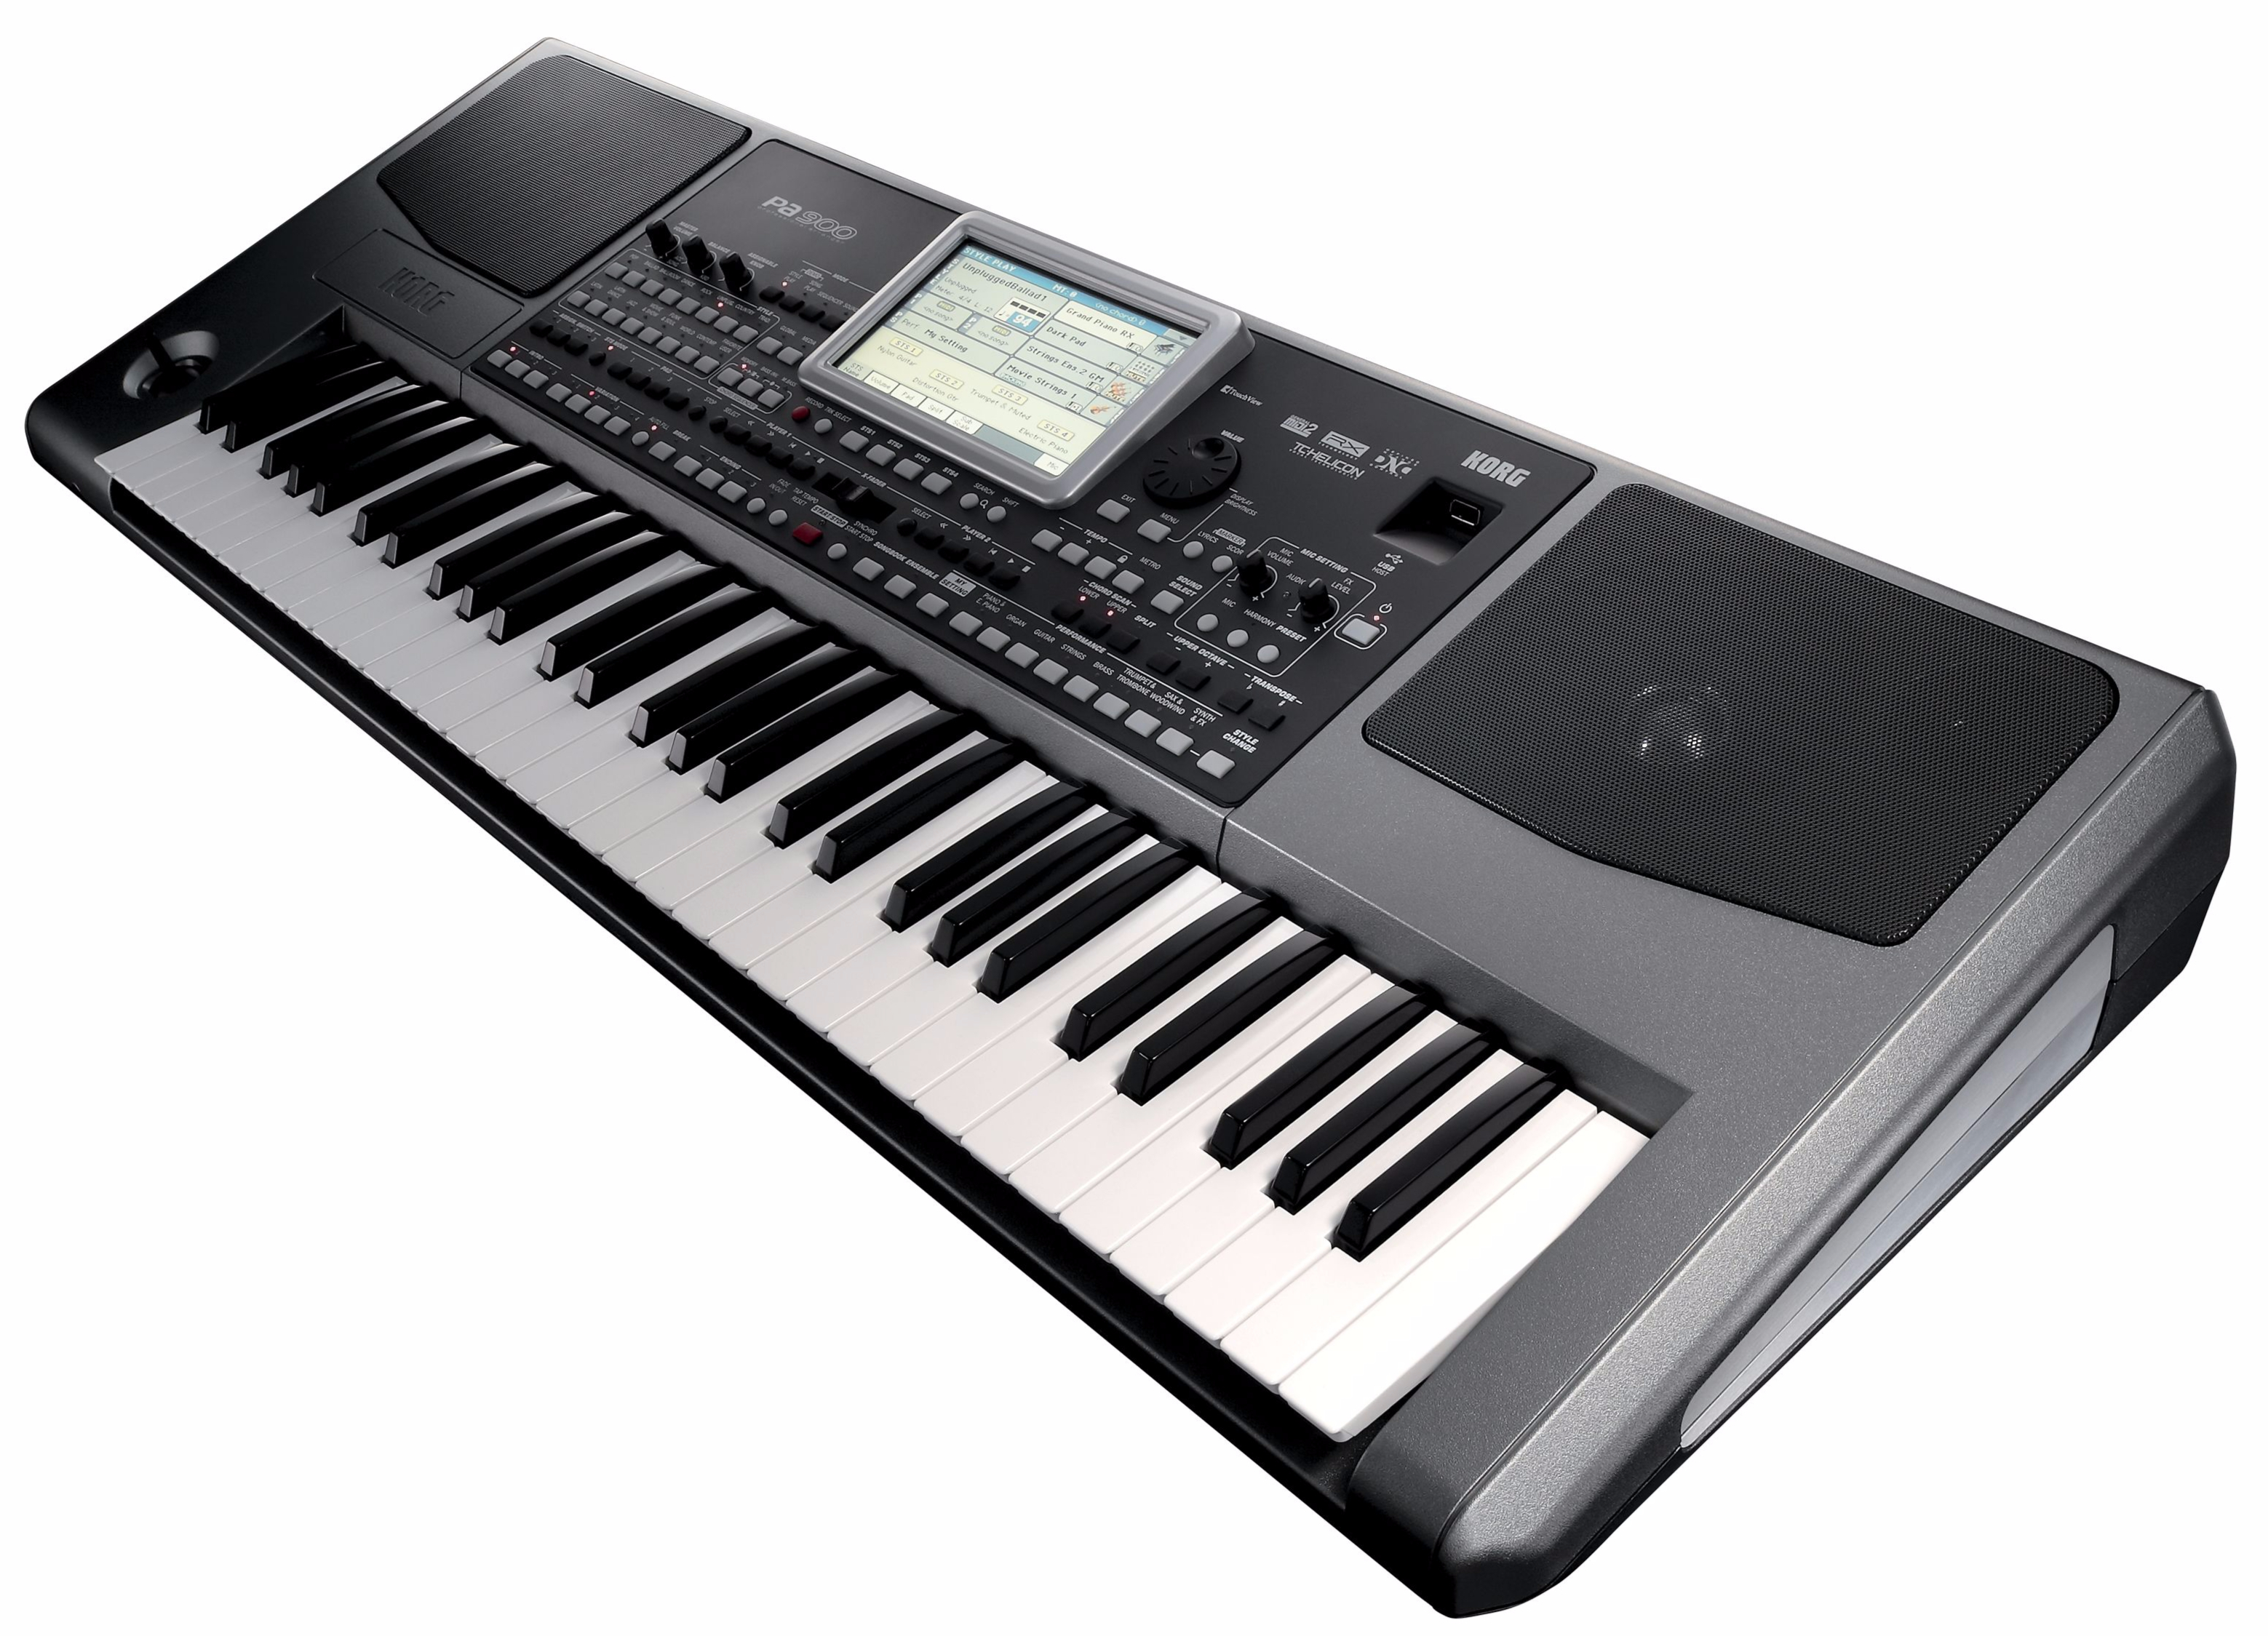 korg pa900 entertainer keyboard. Black Bedroom Furniture Sets. Home Design Ideas